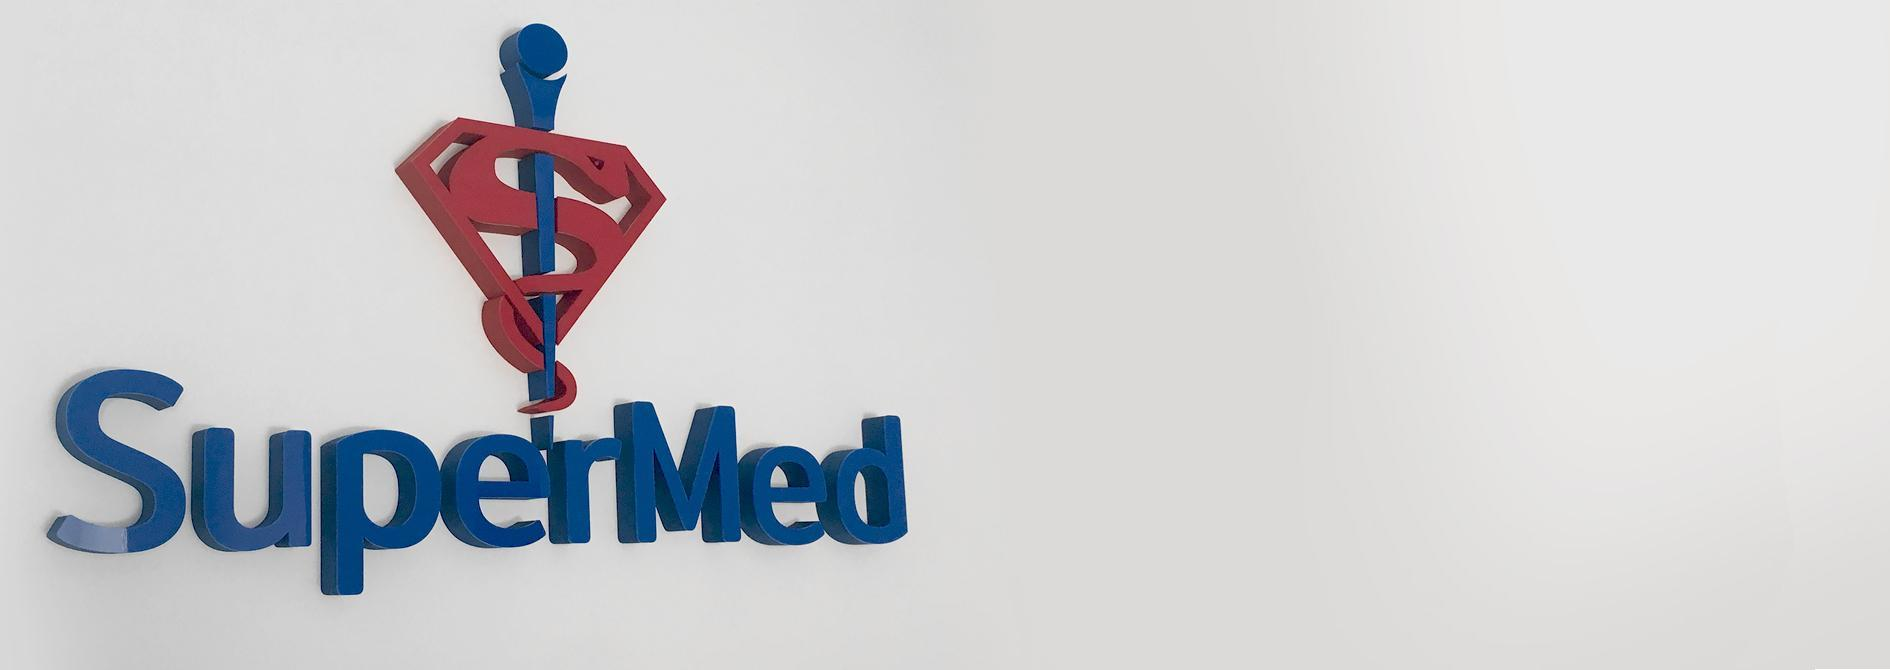 Supermed logo